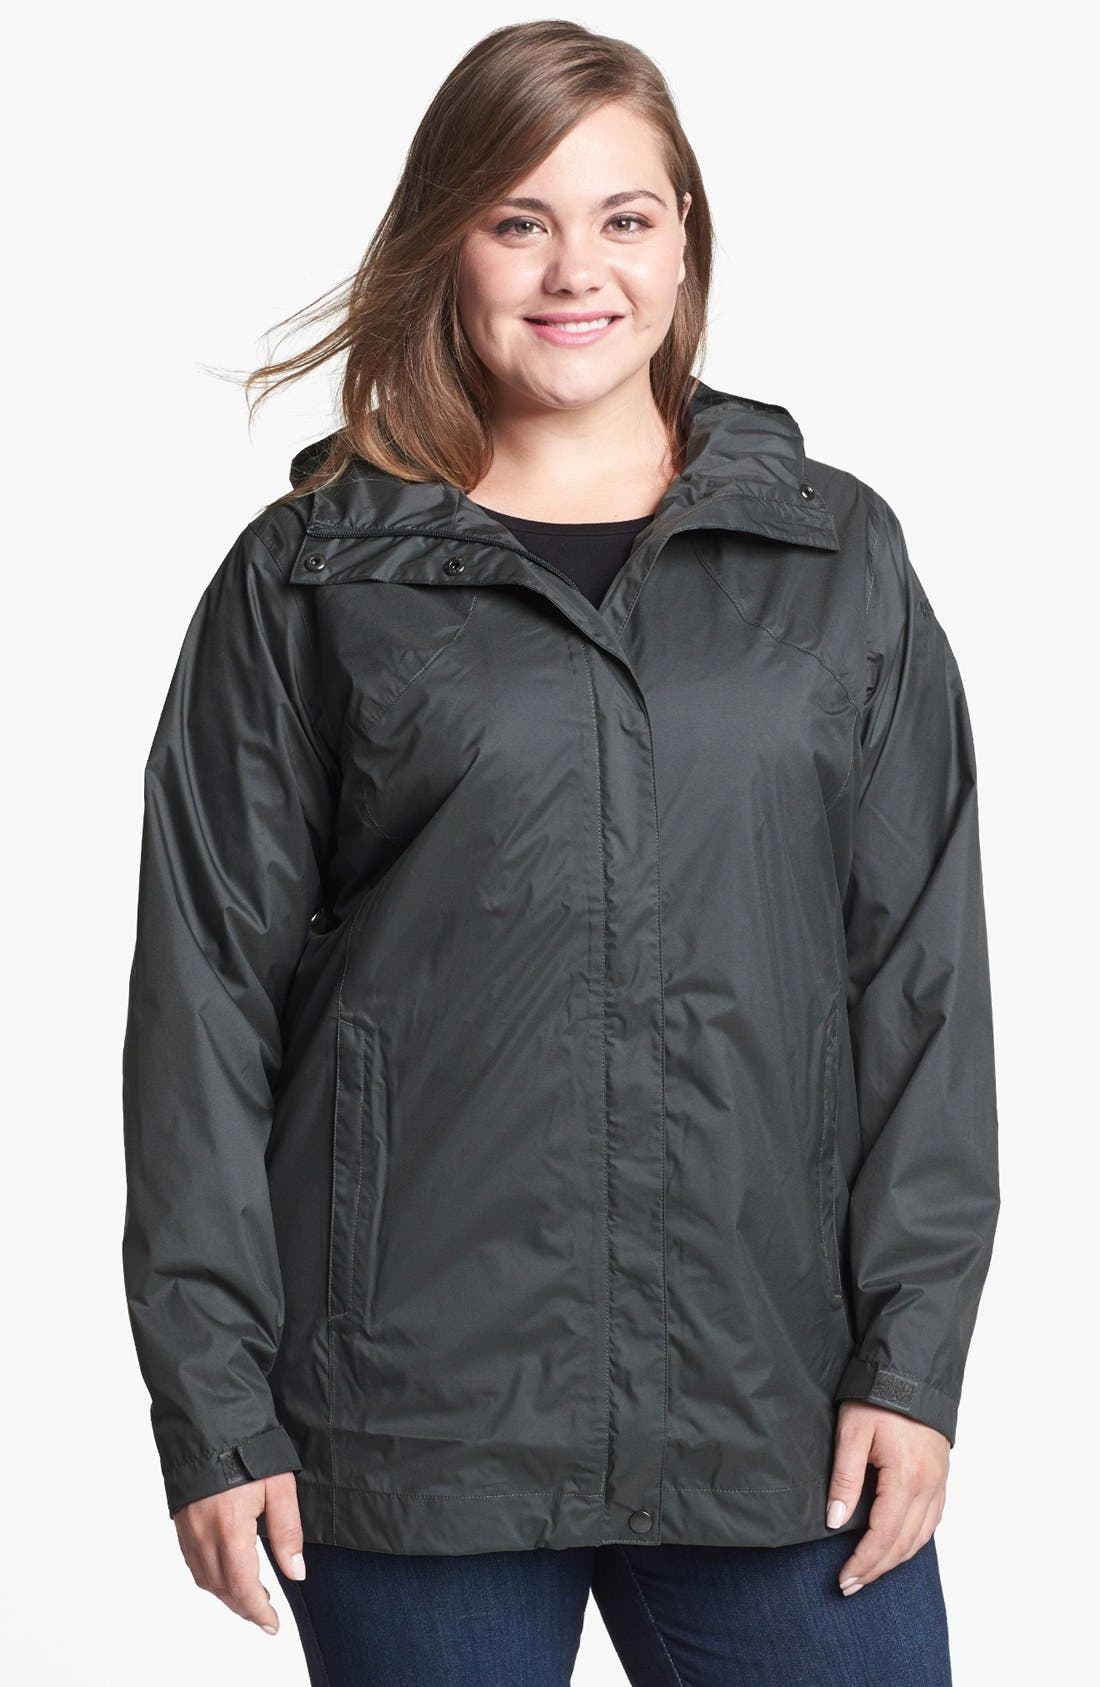 Alternate Image 1 Selected - Columbia 'Splash a Little' Rain Jacket (Plus Size)